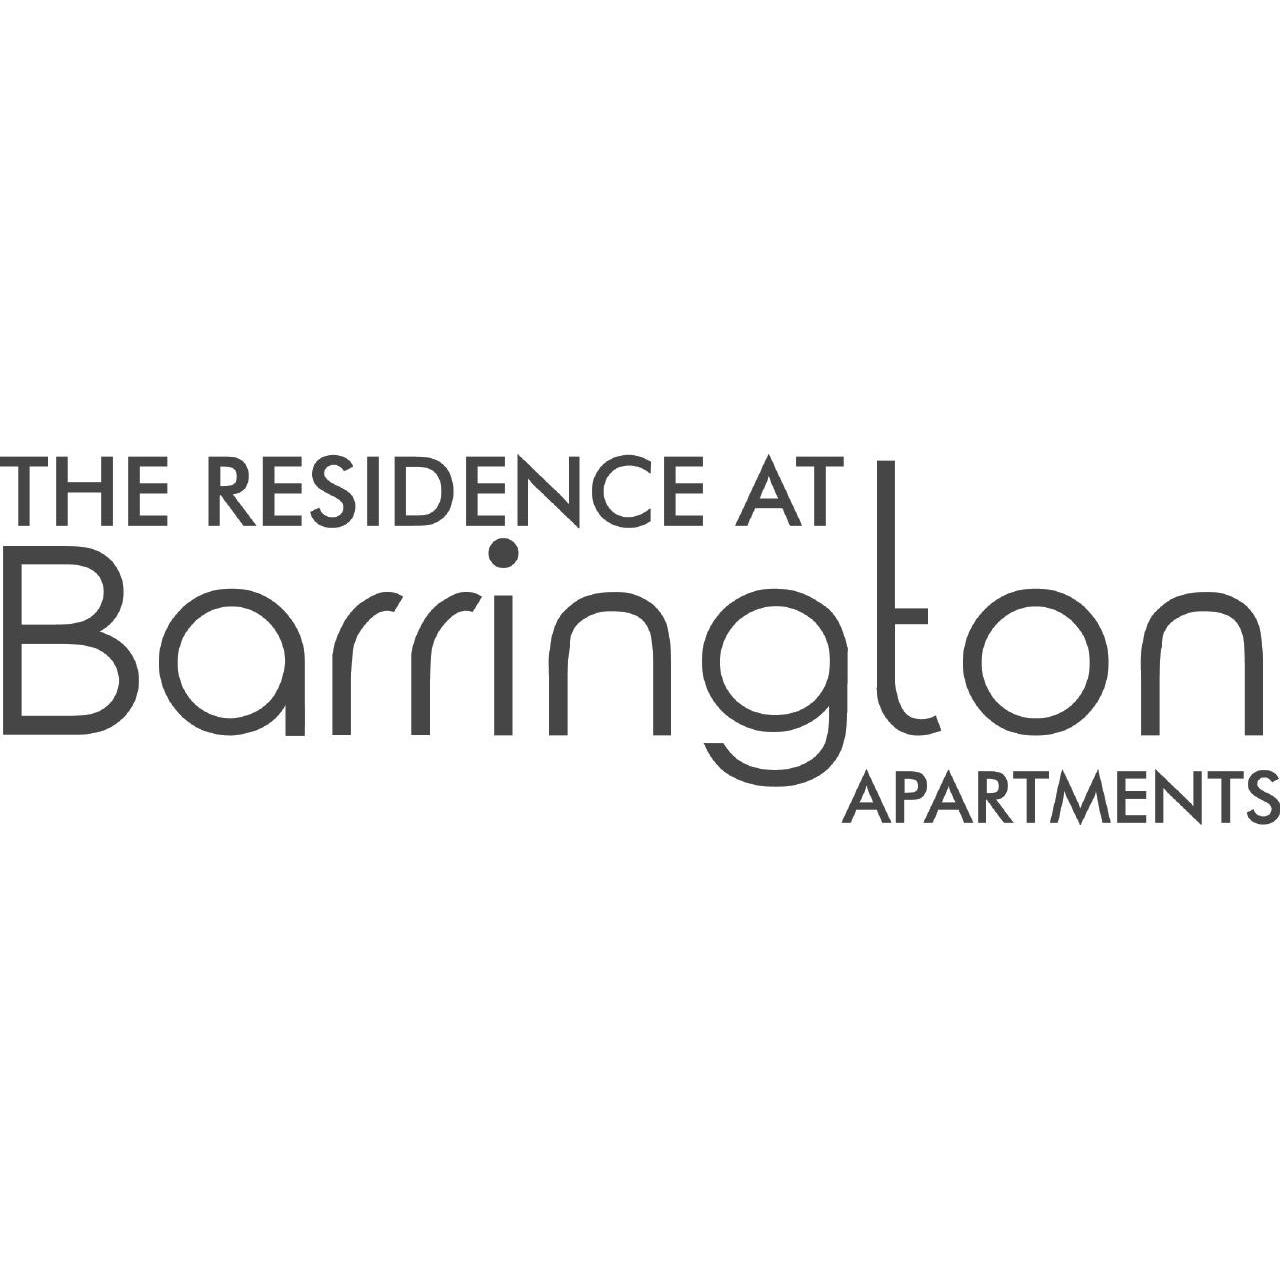 The Residence at Barrington Apartments image 5